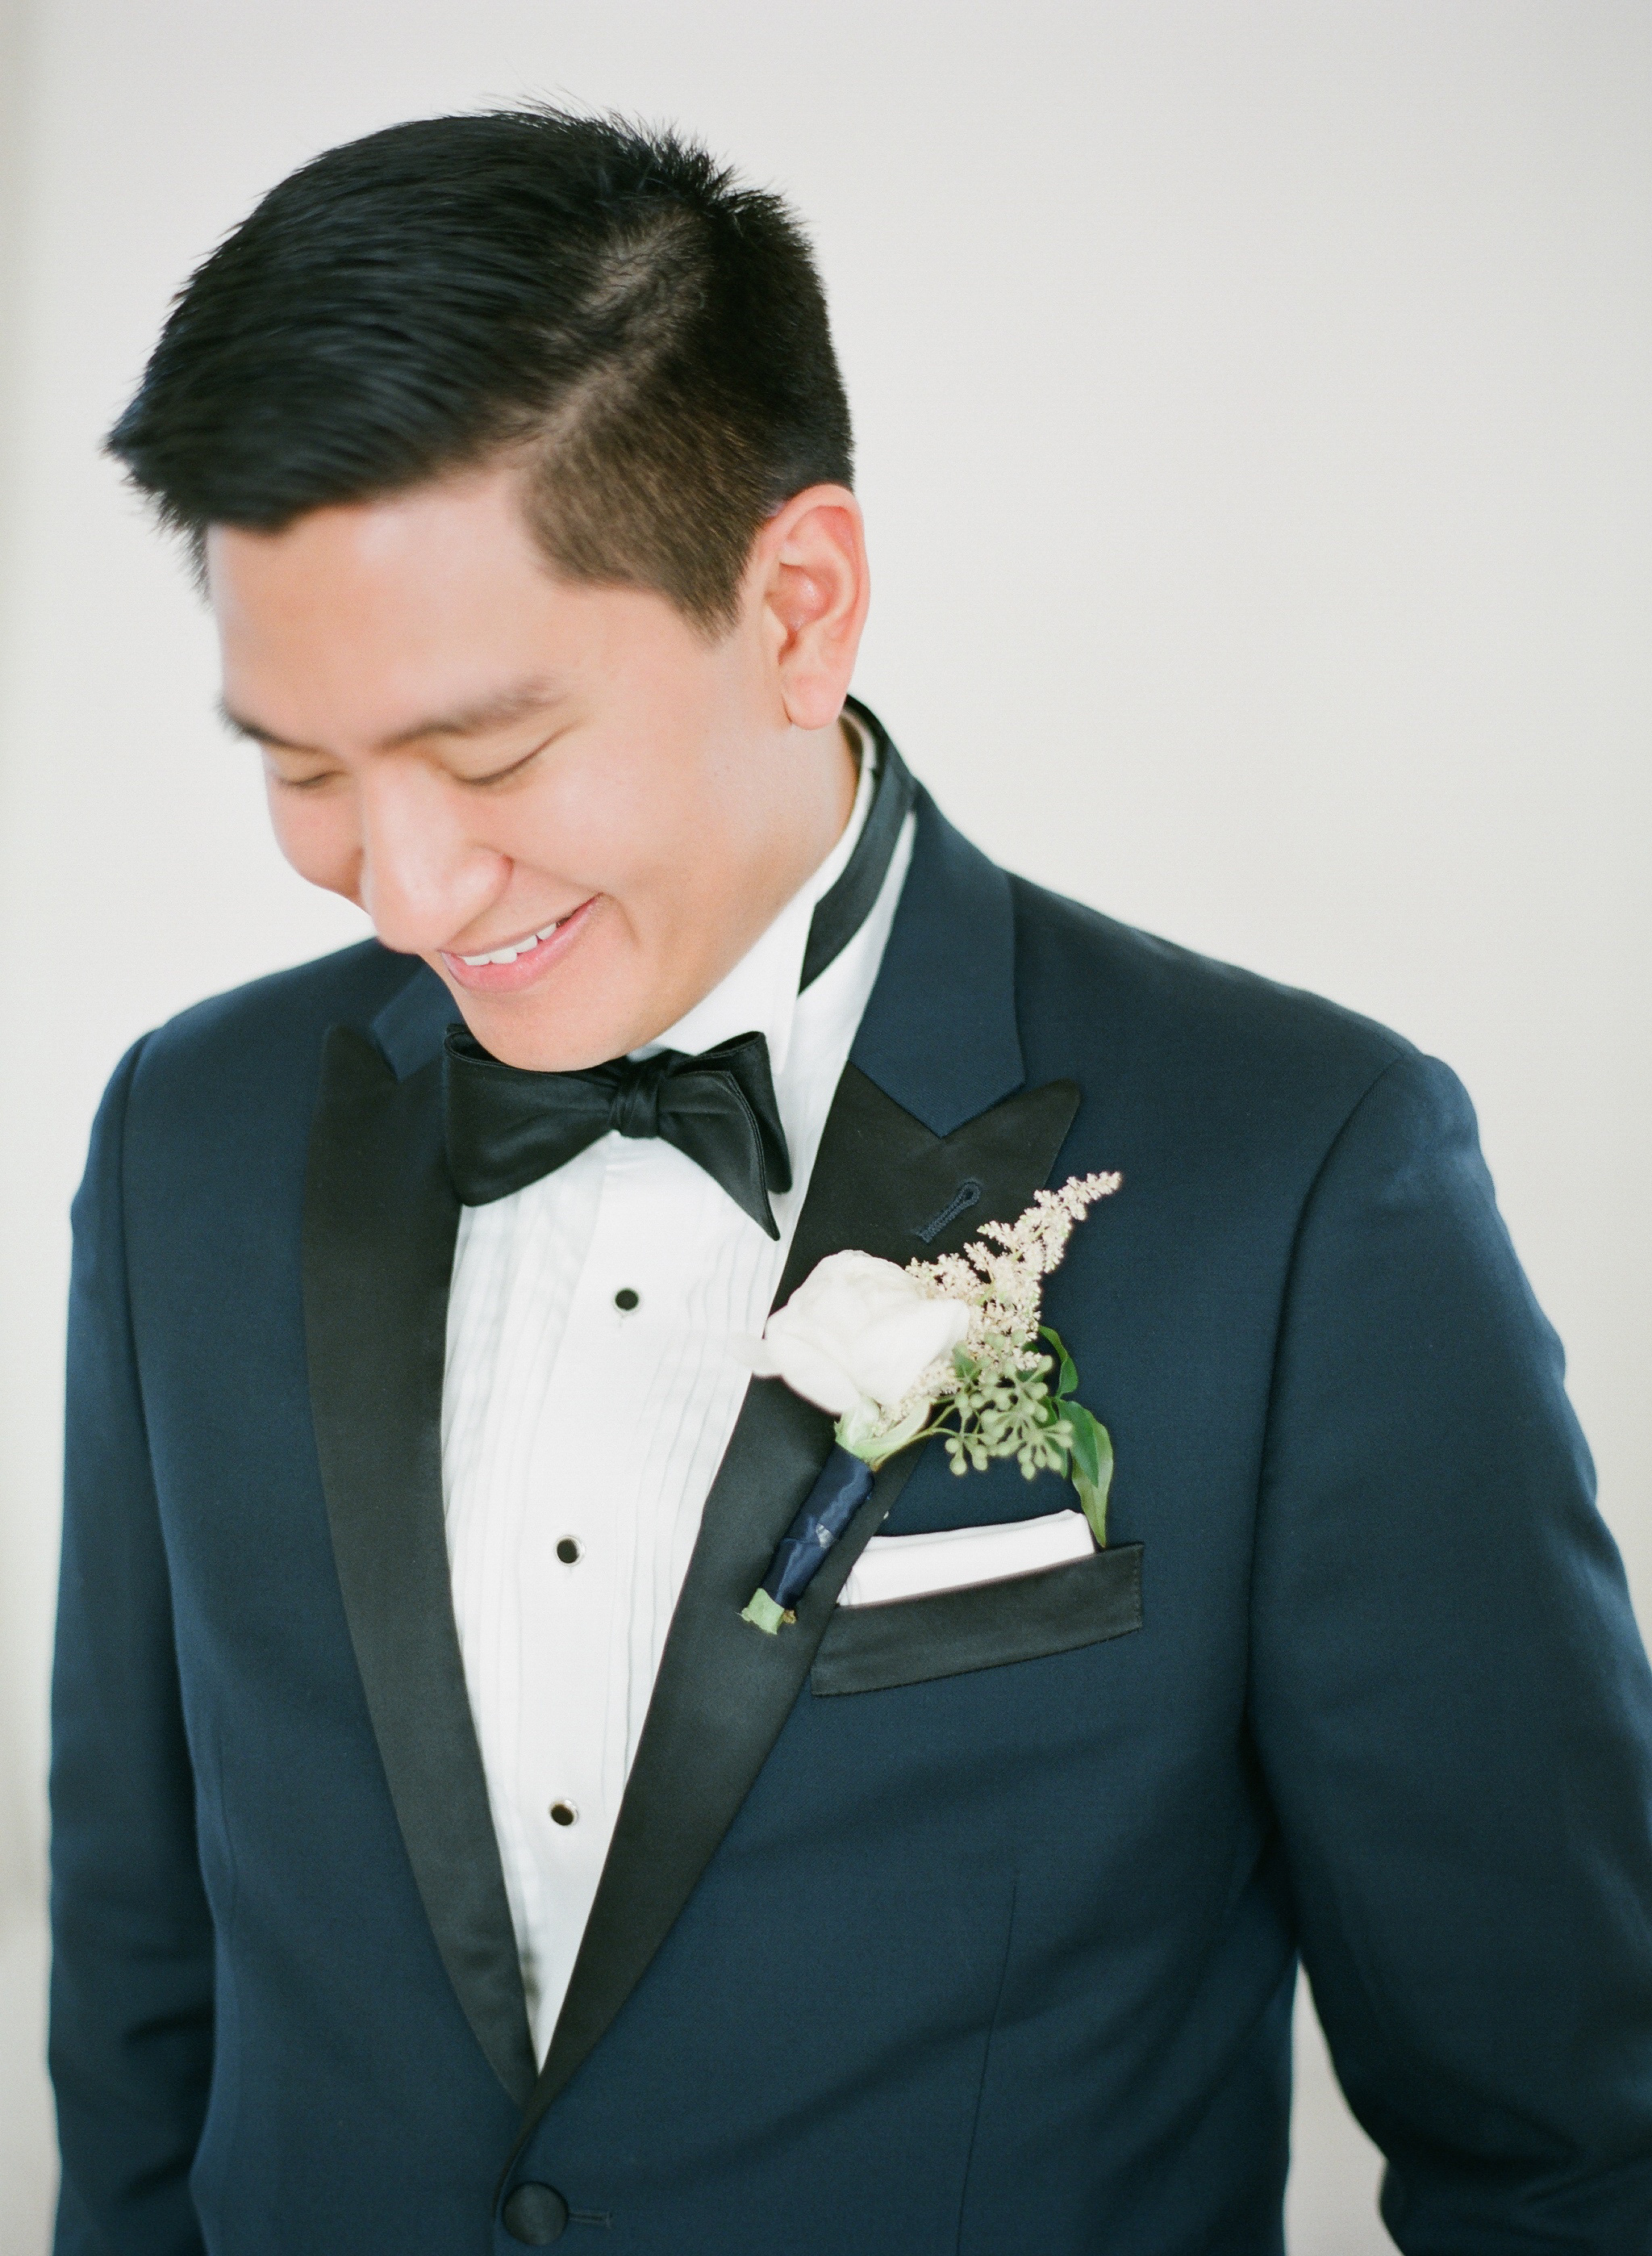 Ring Bearer Tuxedos For Wedding 99 Awesome